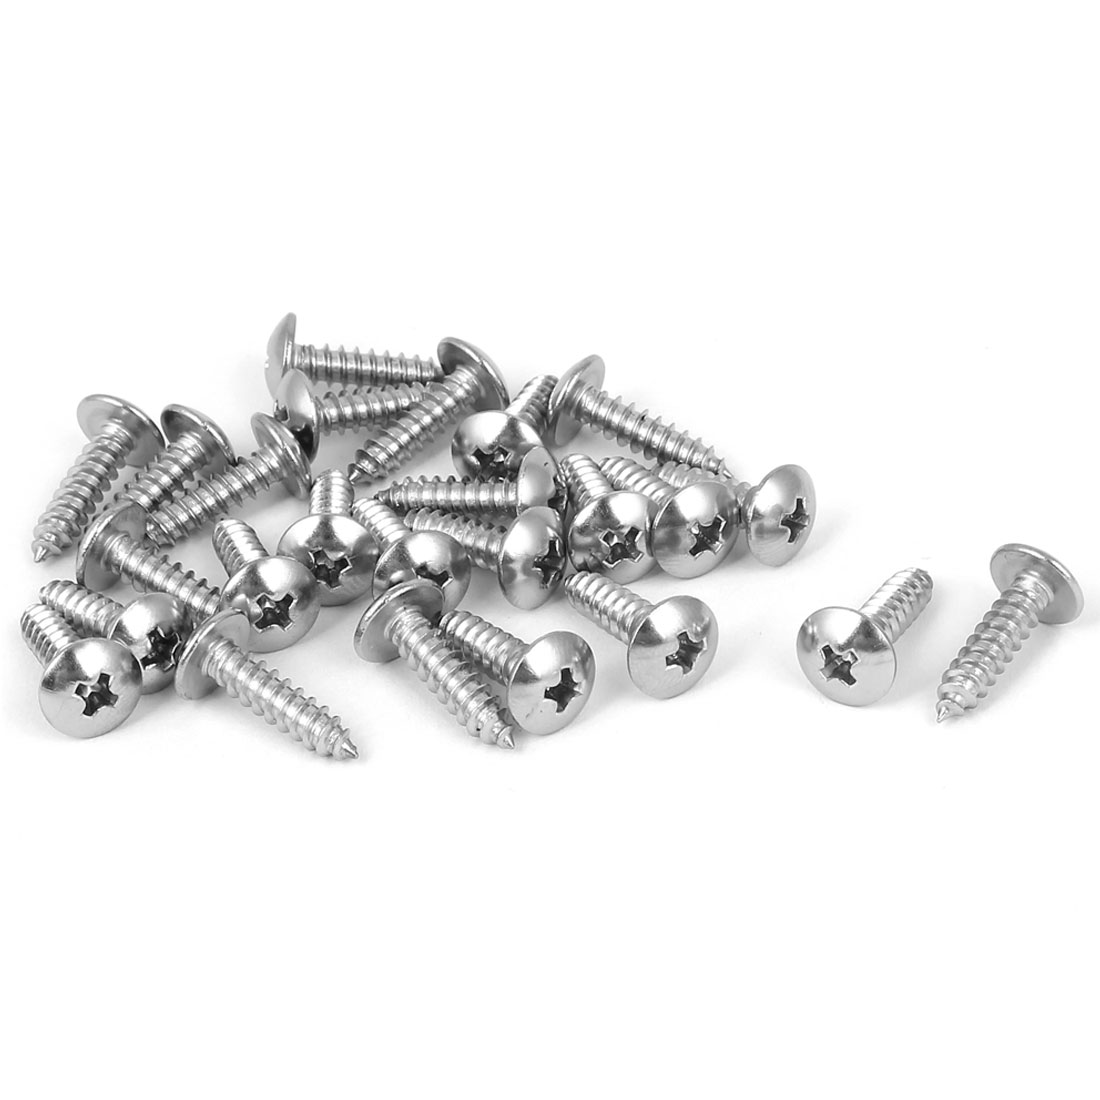 #8 M4.2x16mm Stainless Steel Phillips Truss Head Self Tapping Screws 25pcs